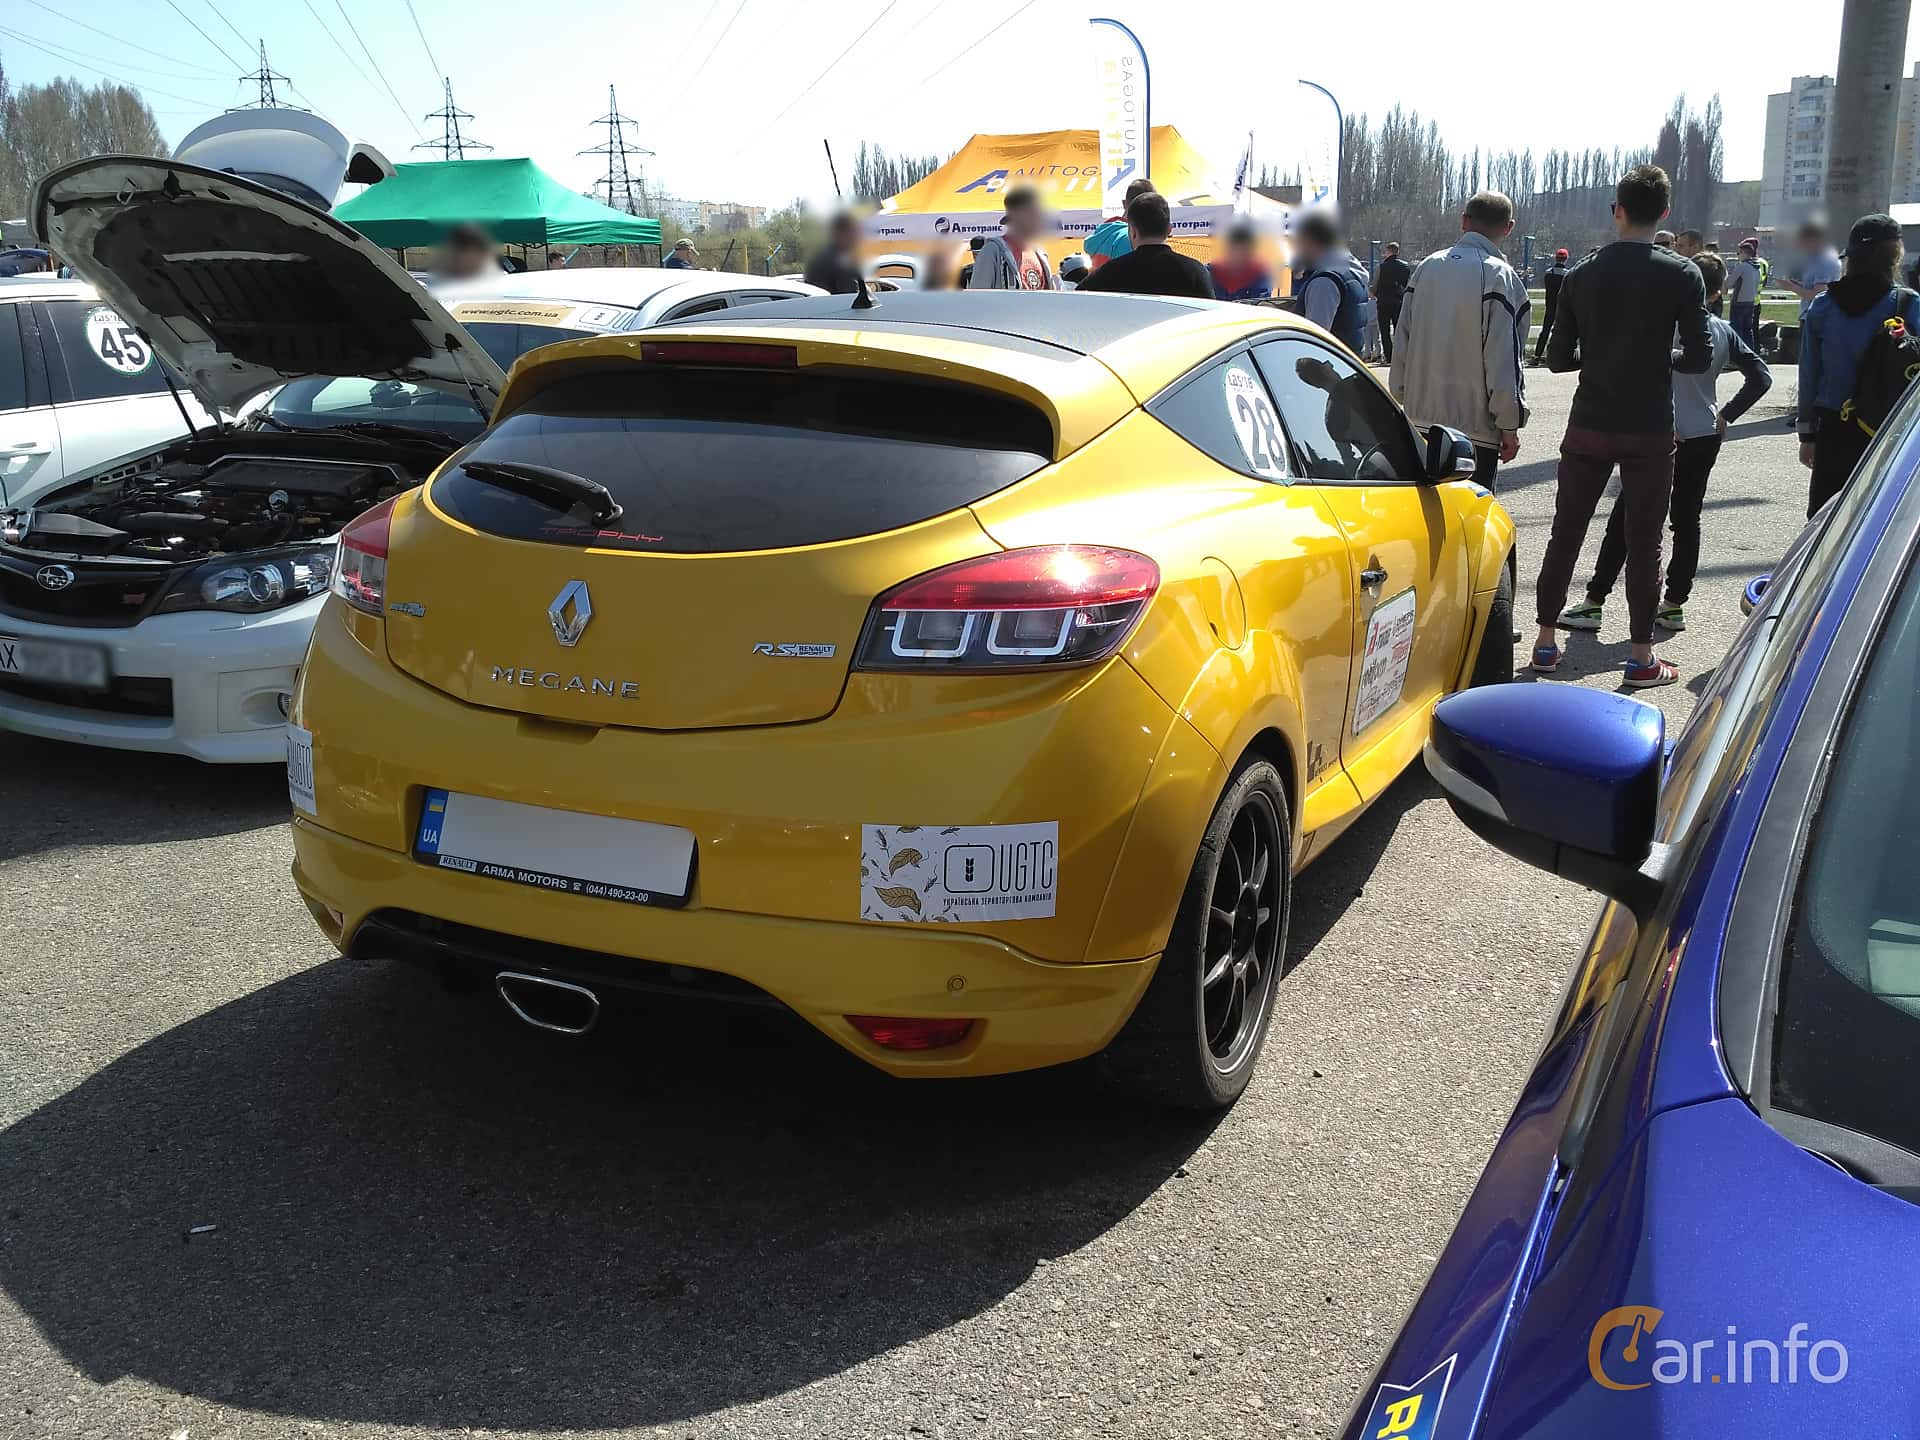 Renault Mégane RS 2.0 TCe Manual, 265hp, 2012 at Ltava Time Attack 1st Stage